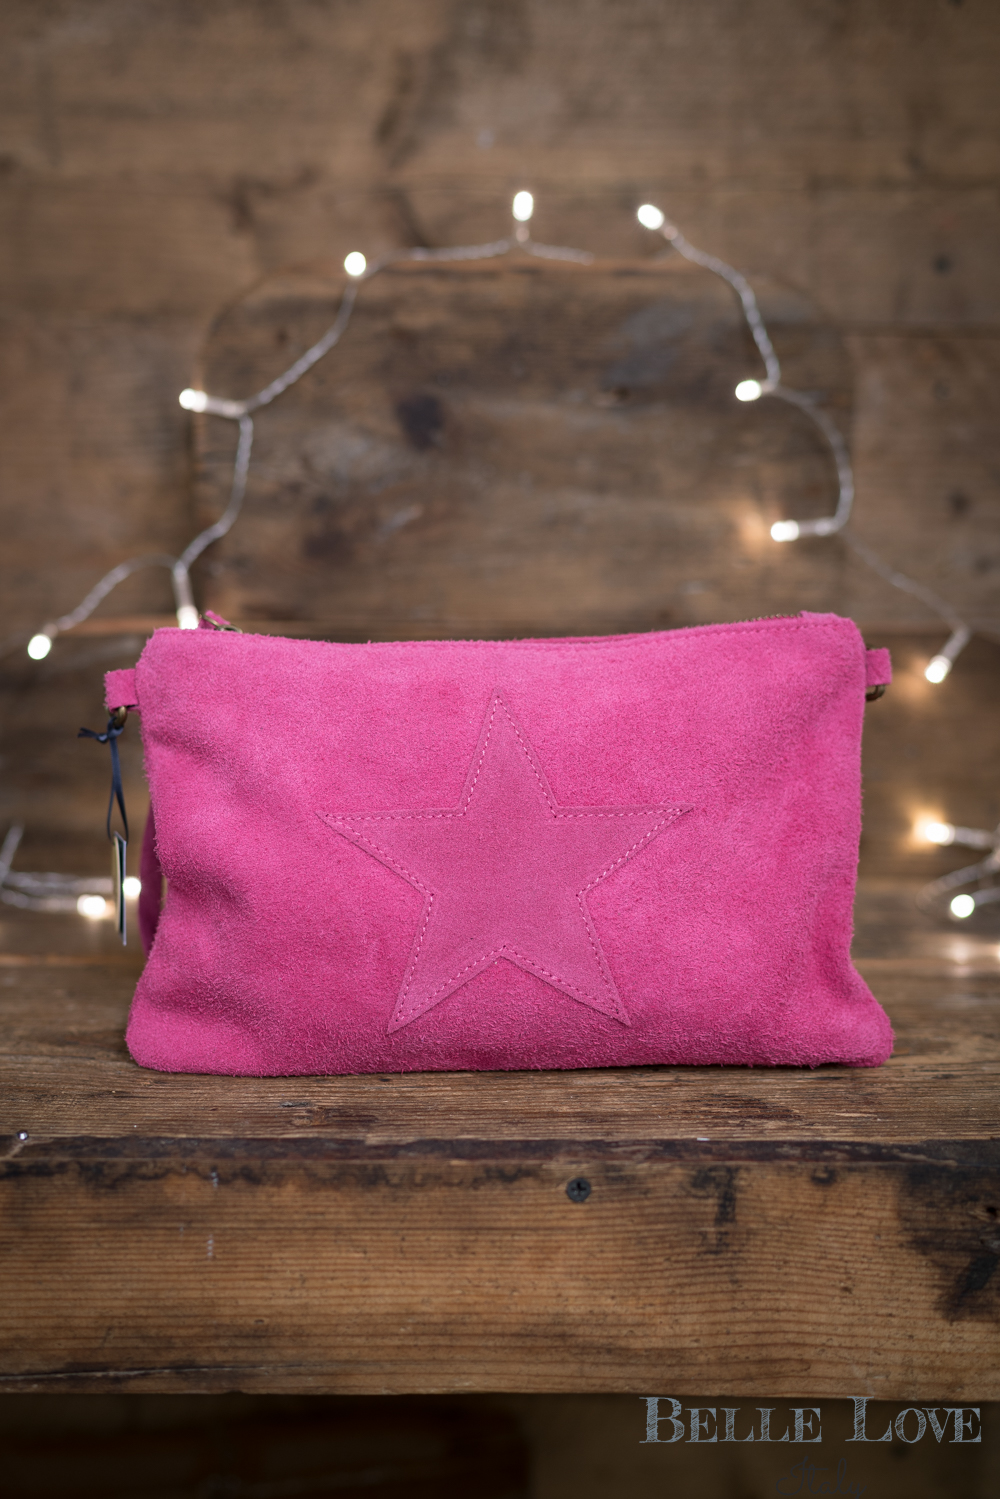 Belle Love Italy Star Suede Bag